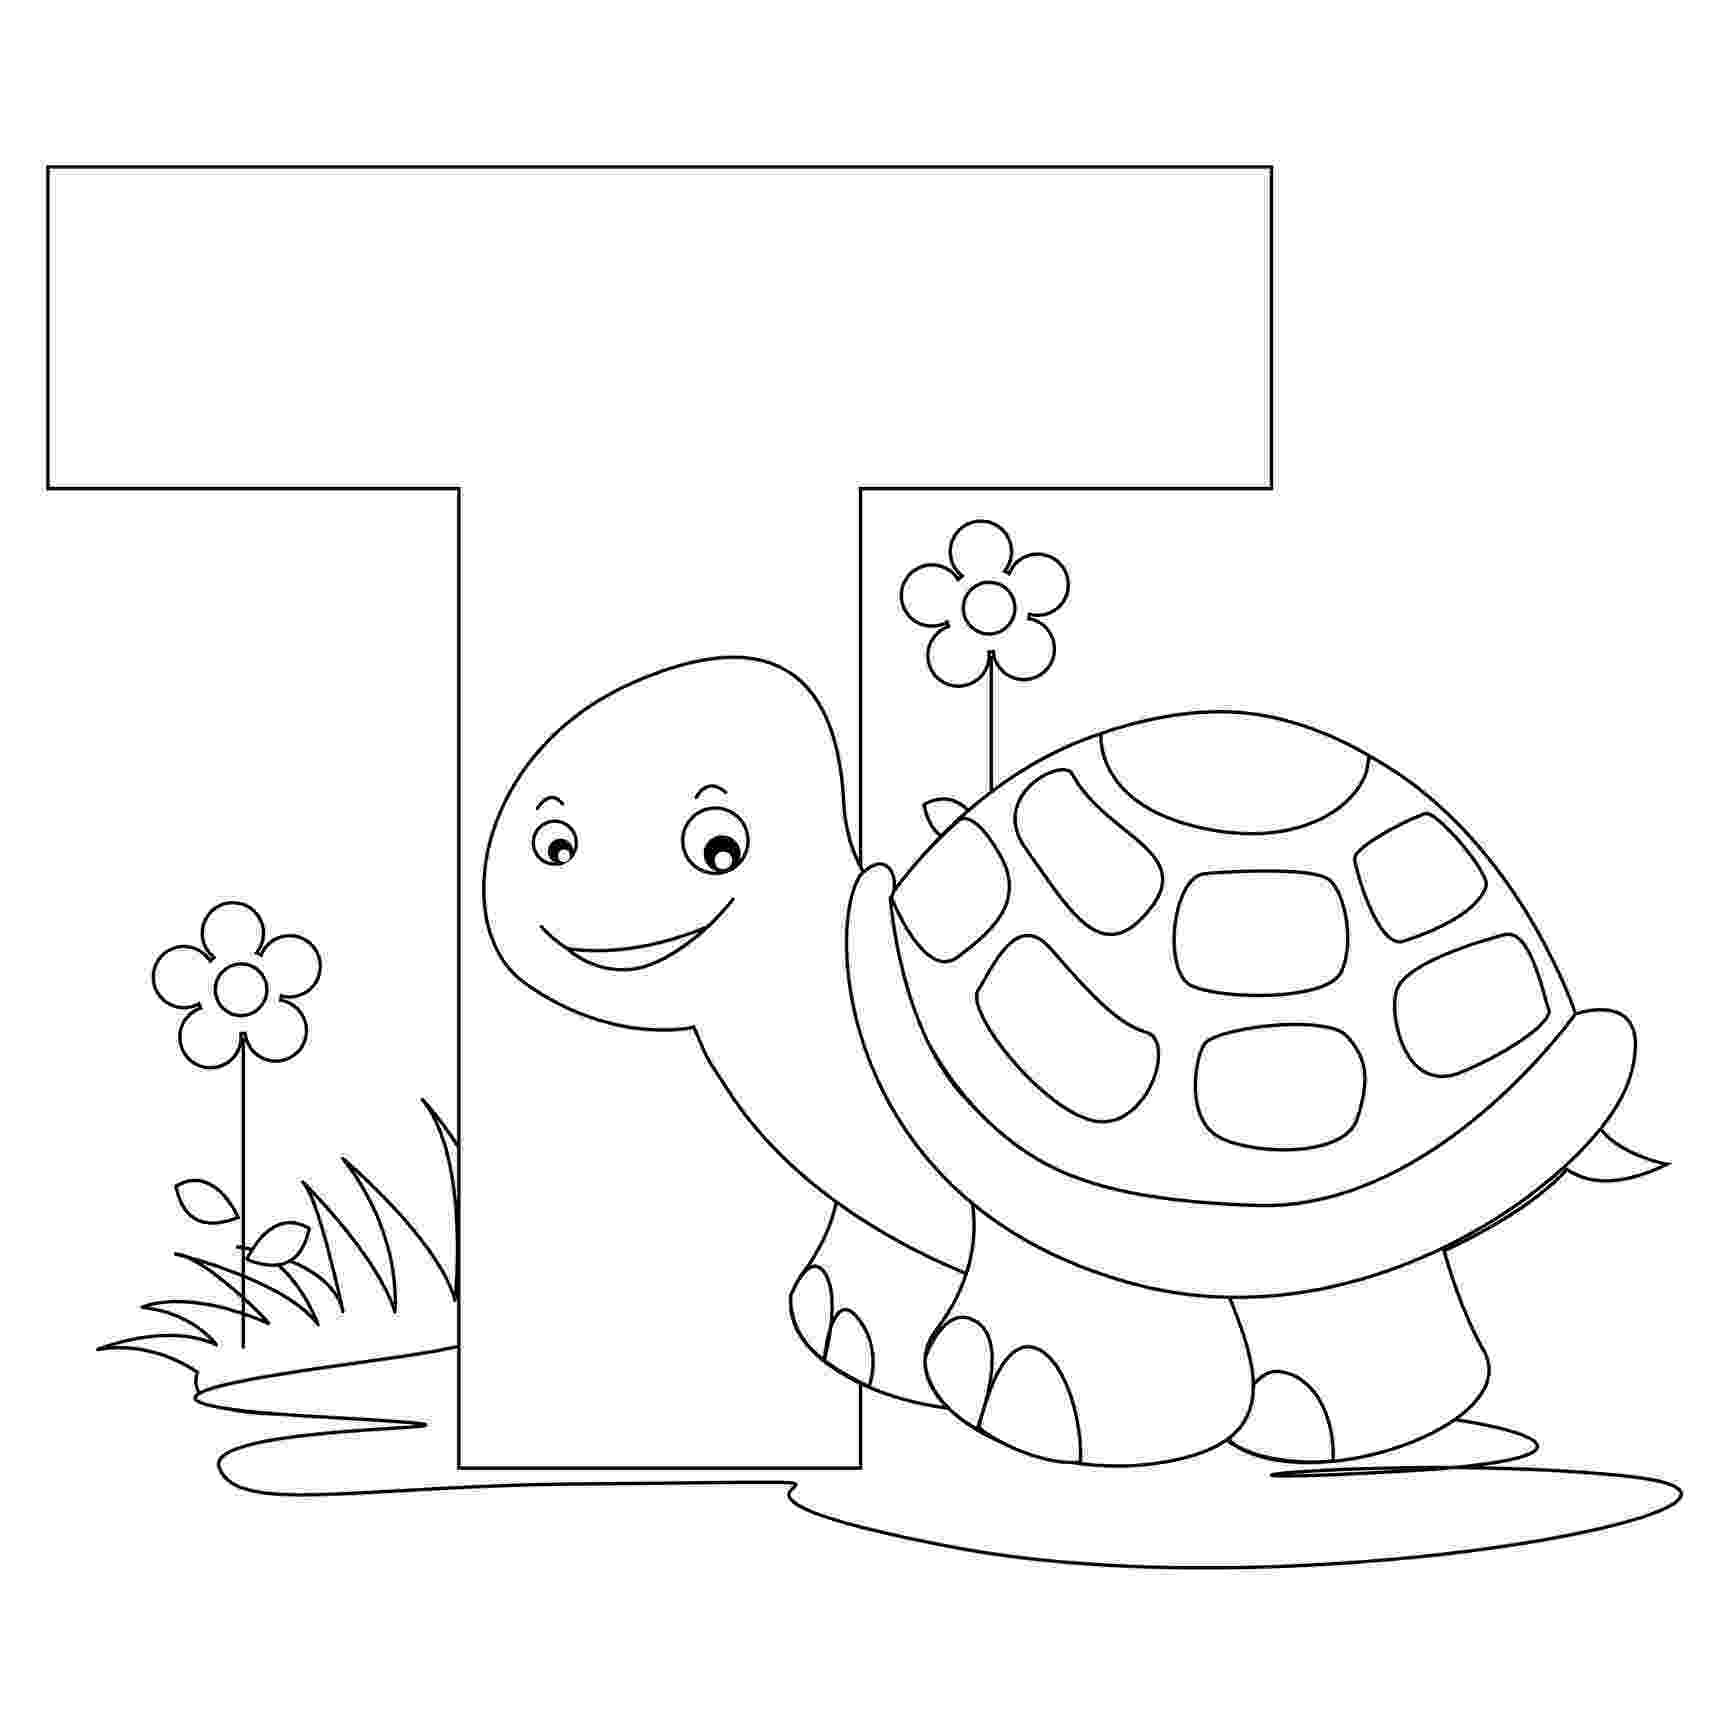 free alphabet coloring pages free printable alphabet coloring pages for kids best coloring alphabet free pages